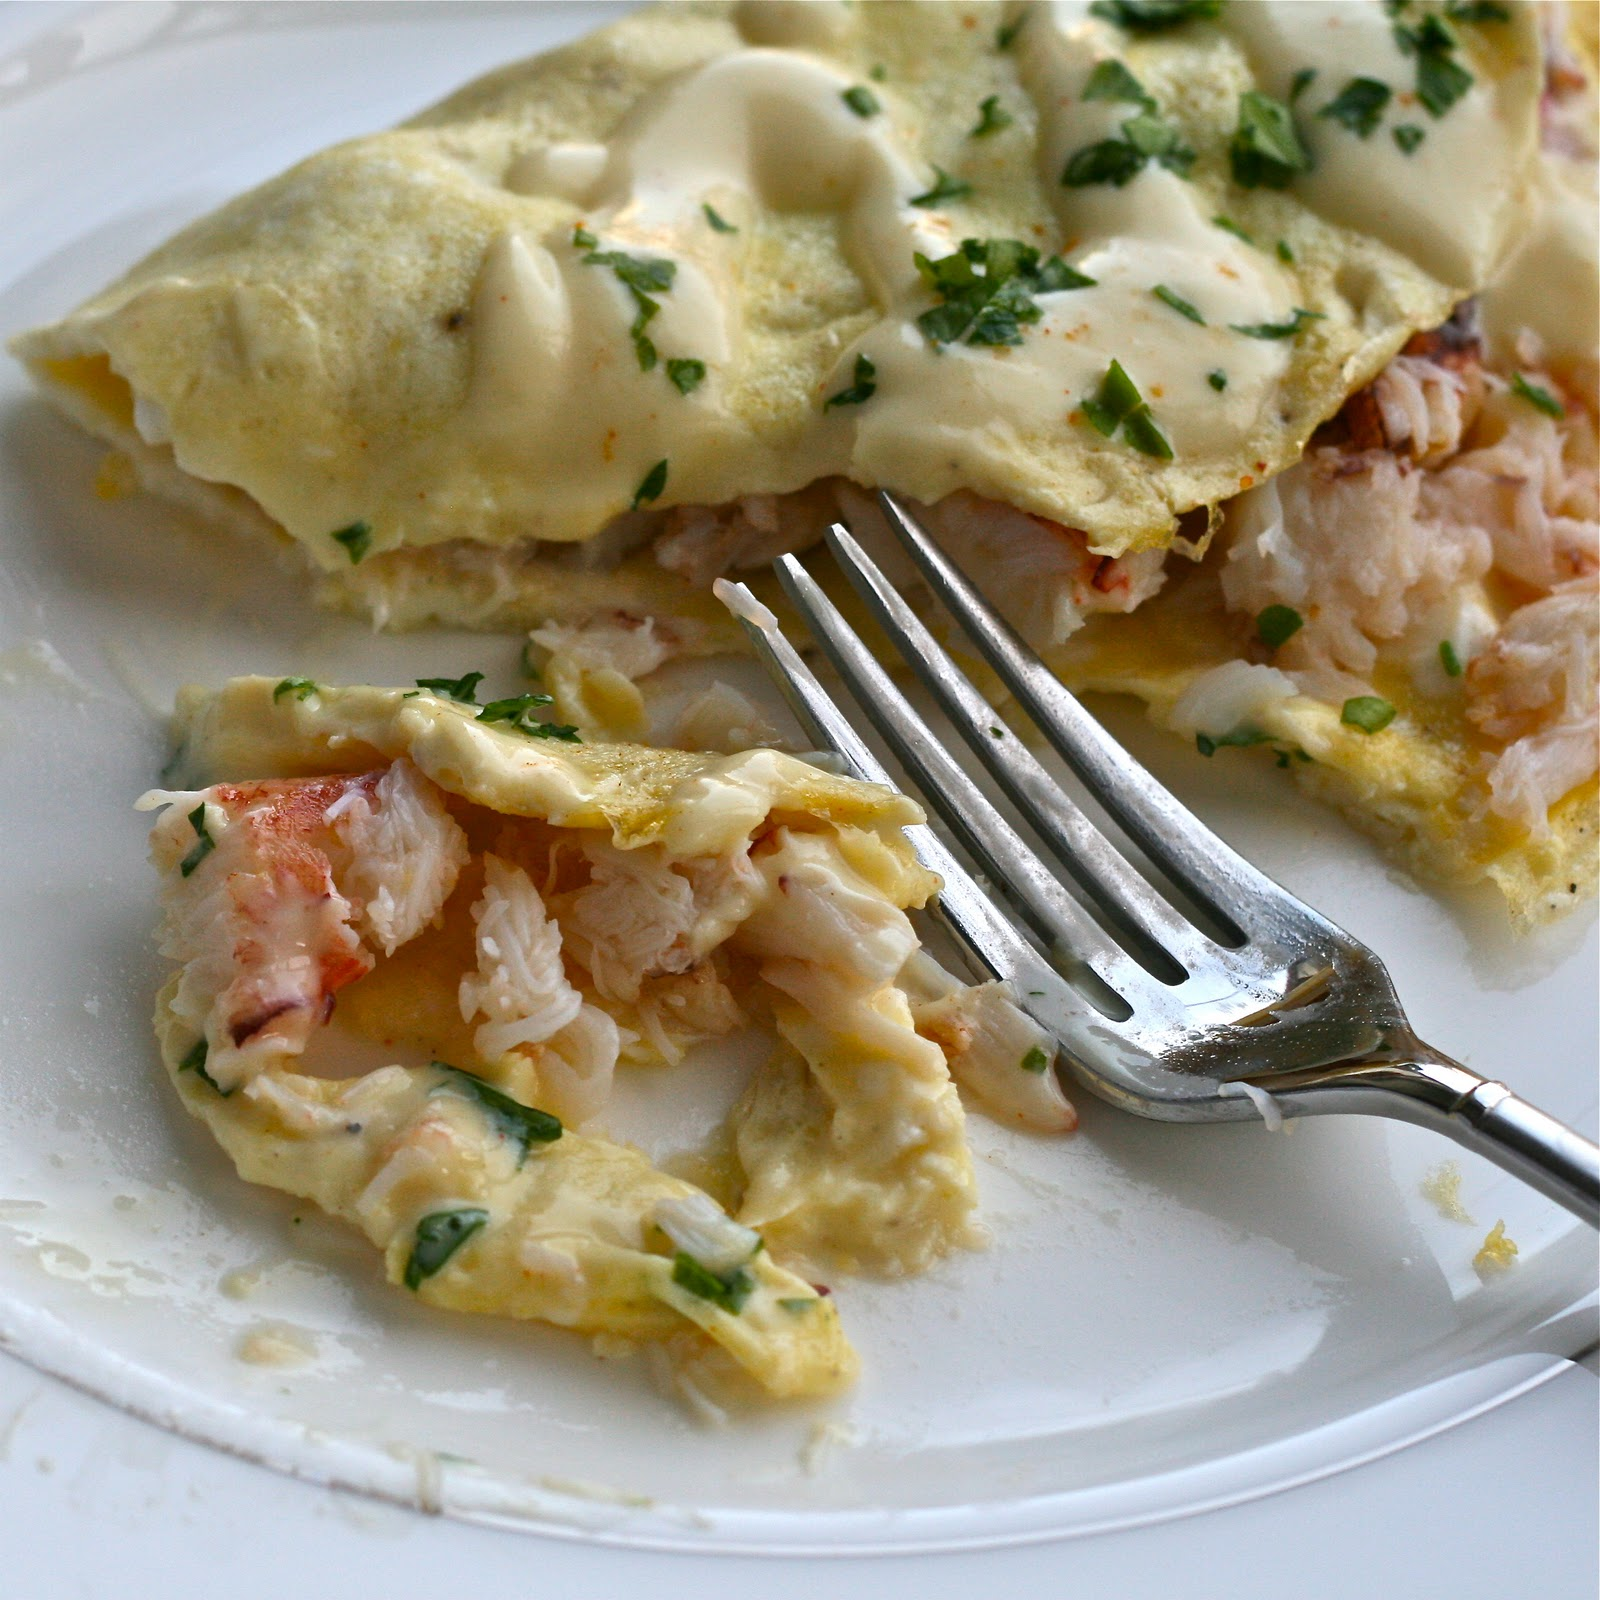 O is for: Omelette with Crab and Mock Hollandaise Sauce